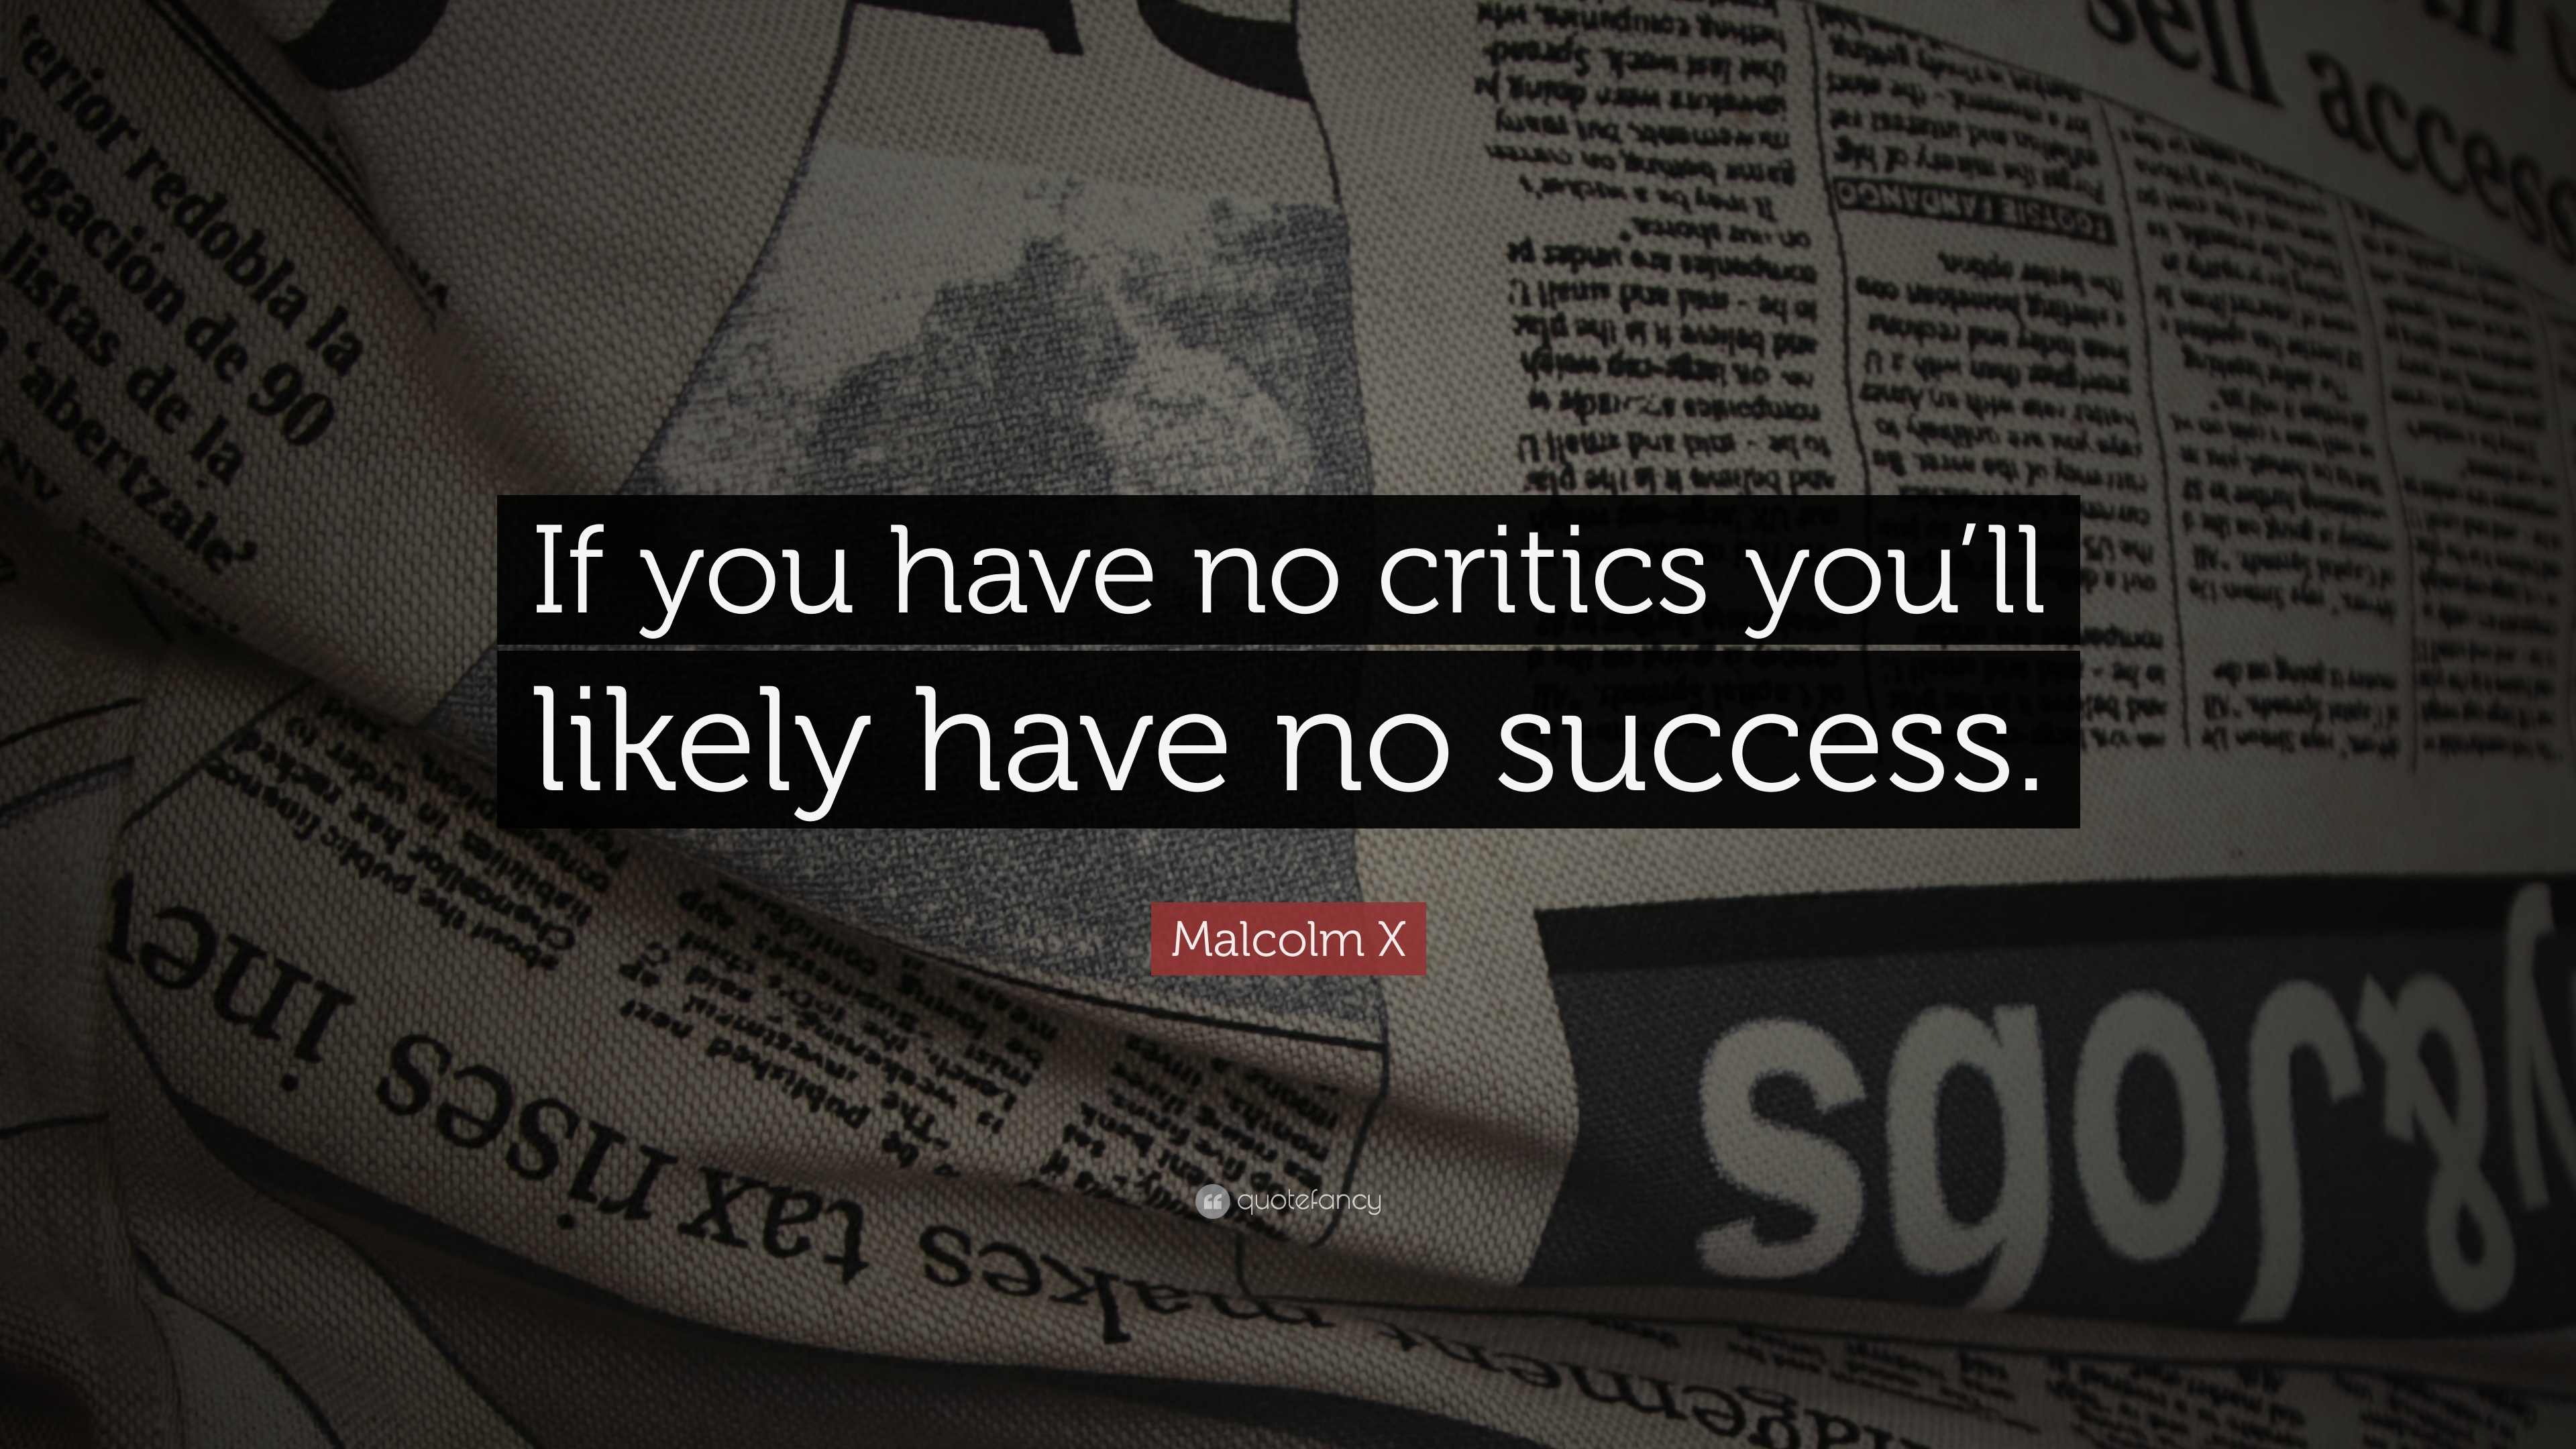 Desktop Wallpaper Book Quotes Malcolm X Quote If You Have No Critics You Ll Likely